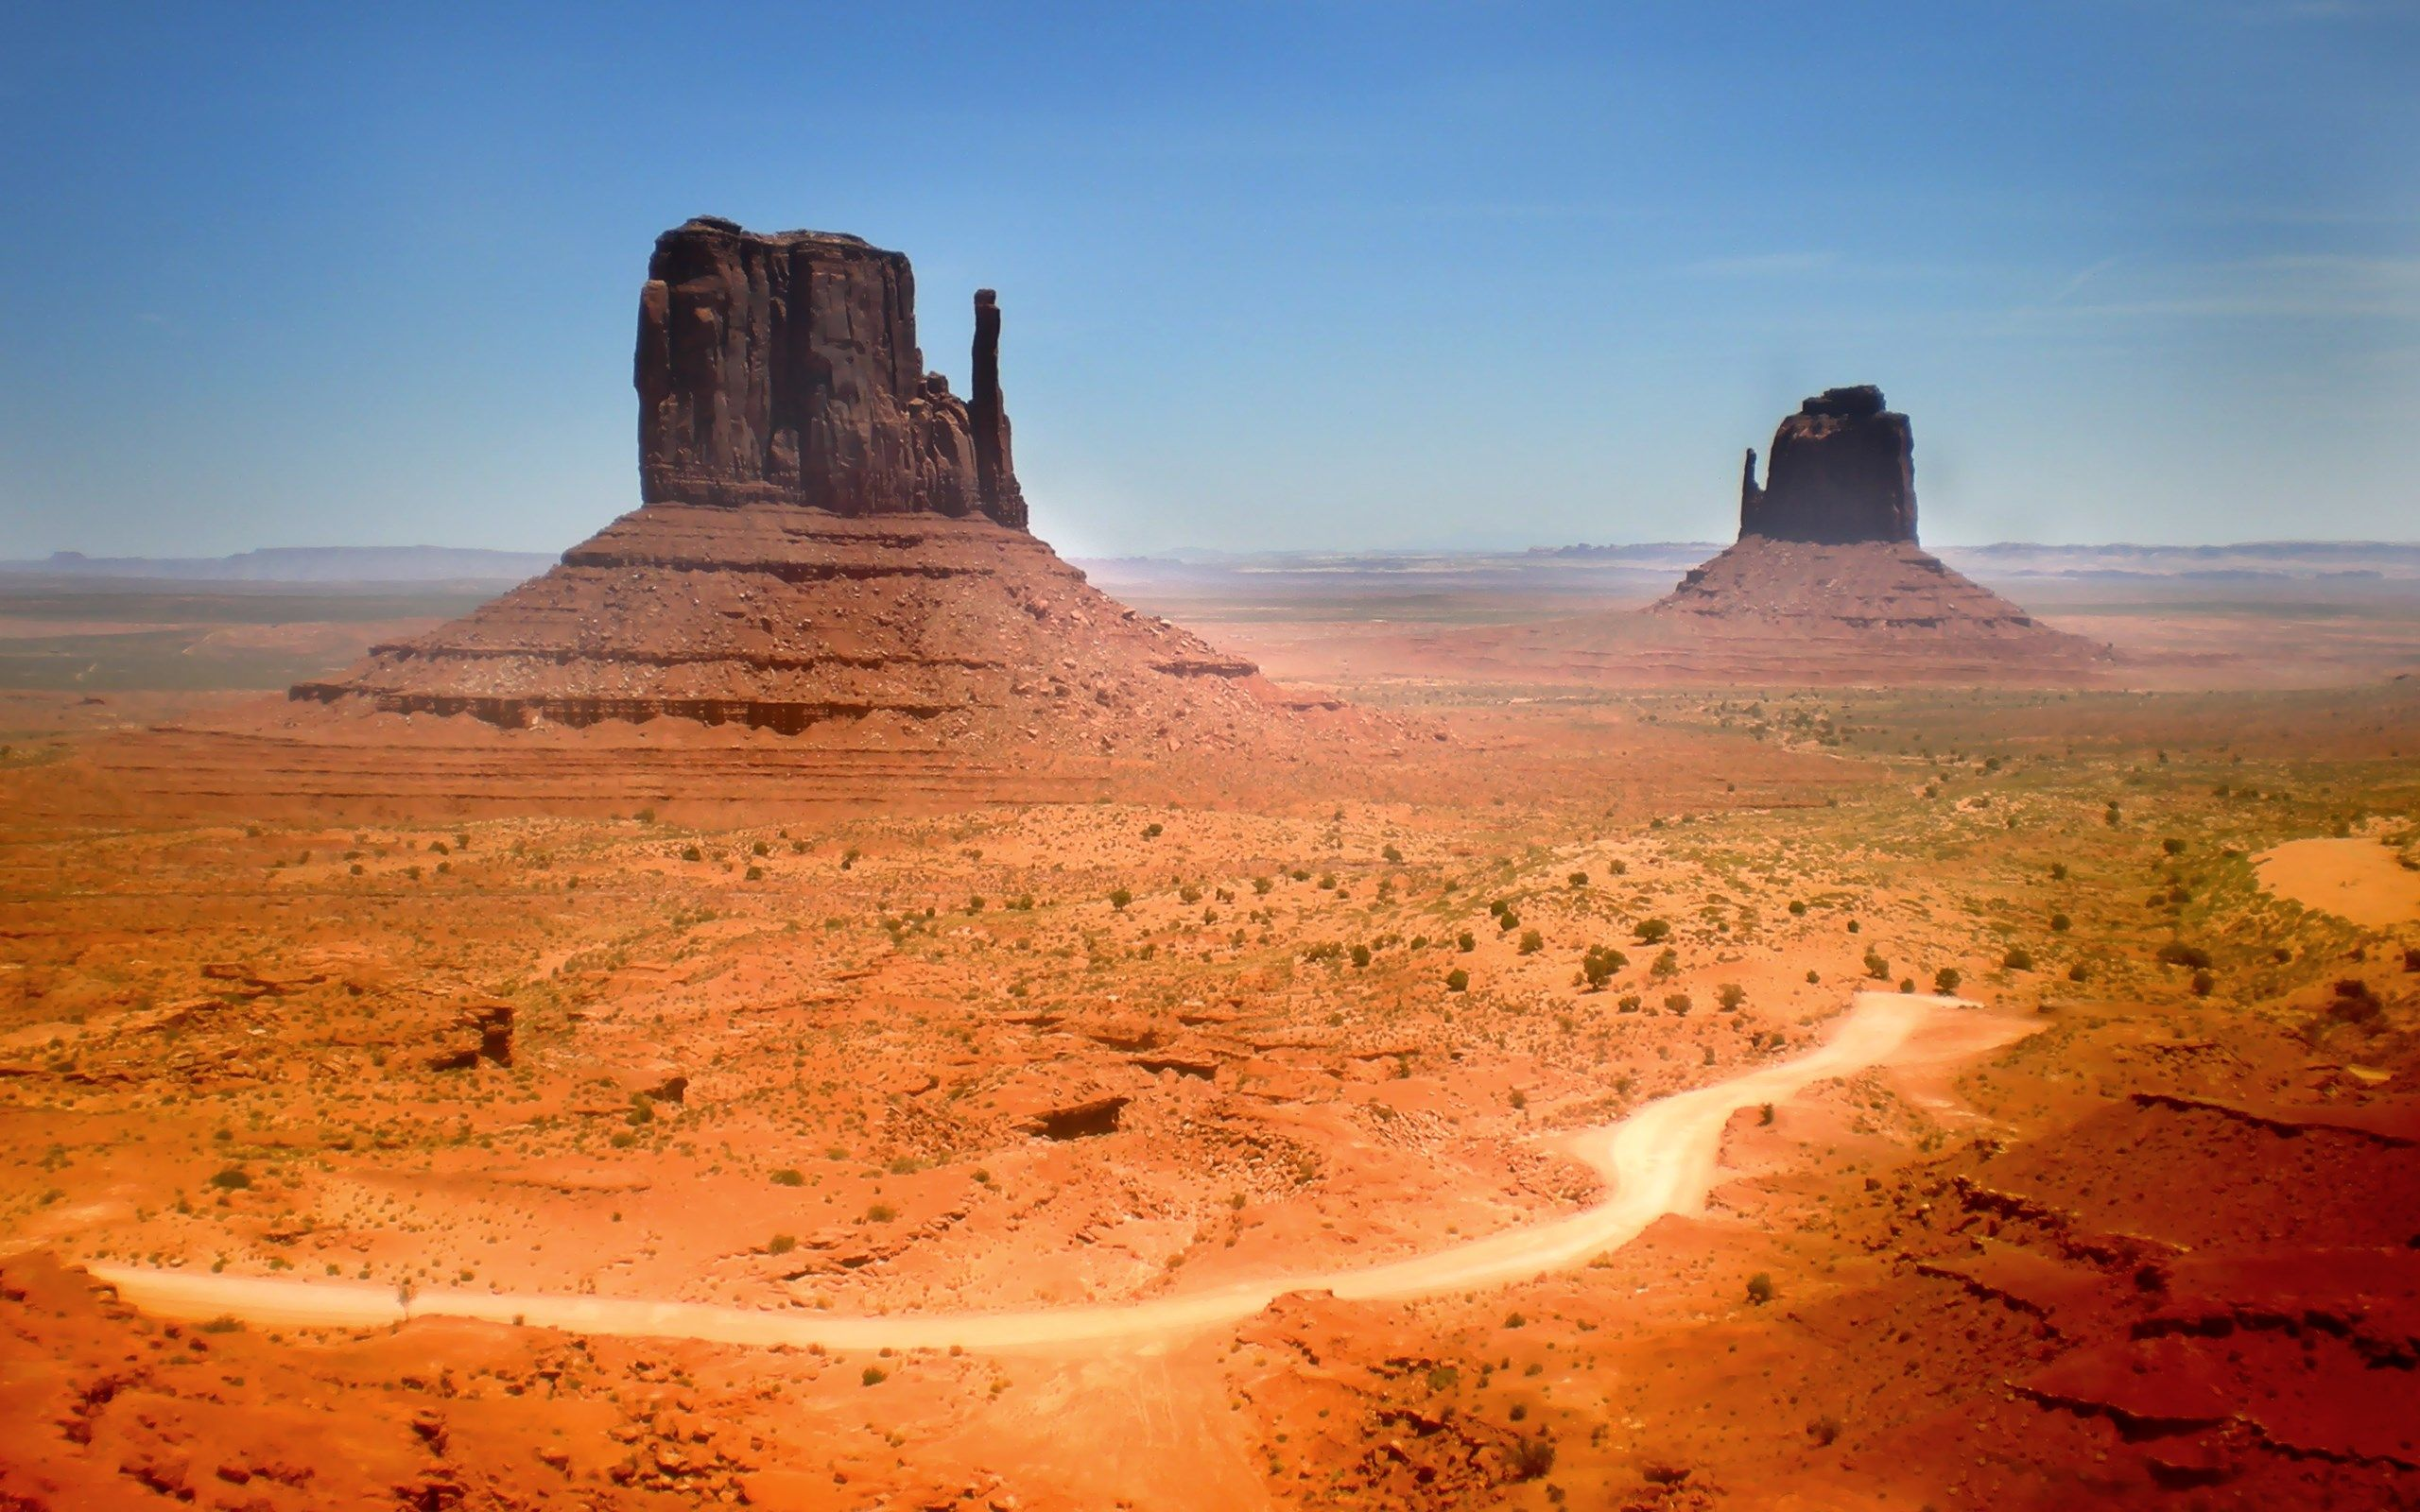 Hd Wallpaper Monument Valley